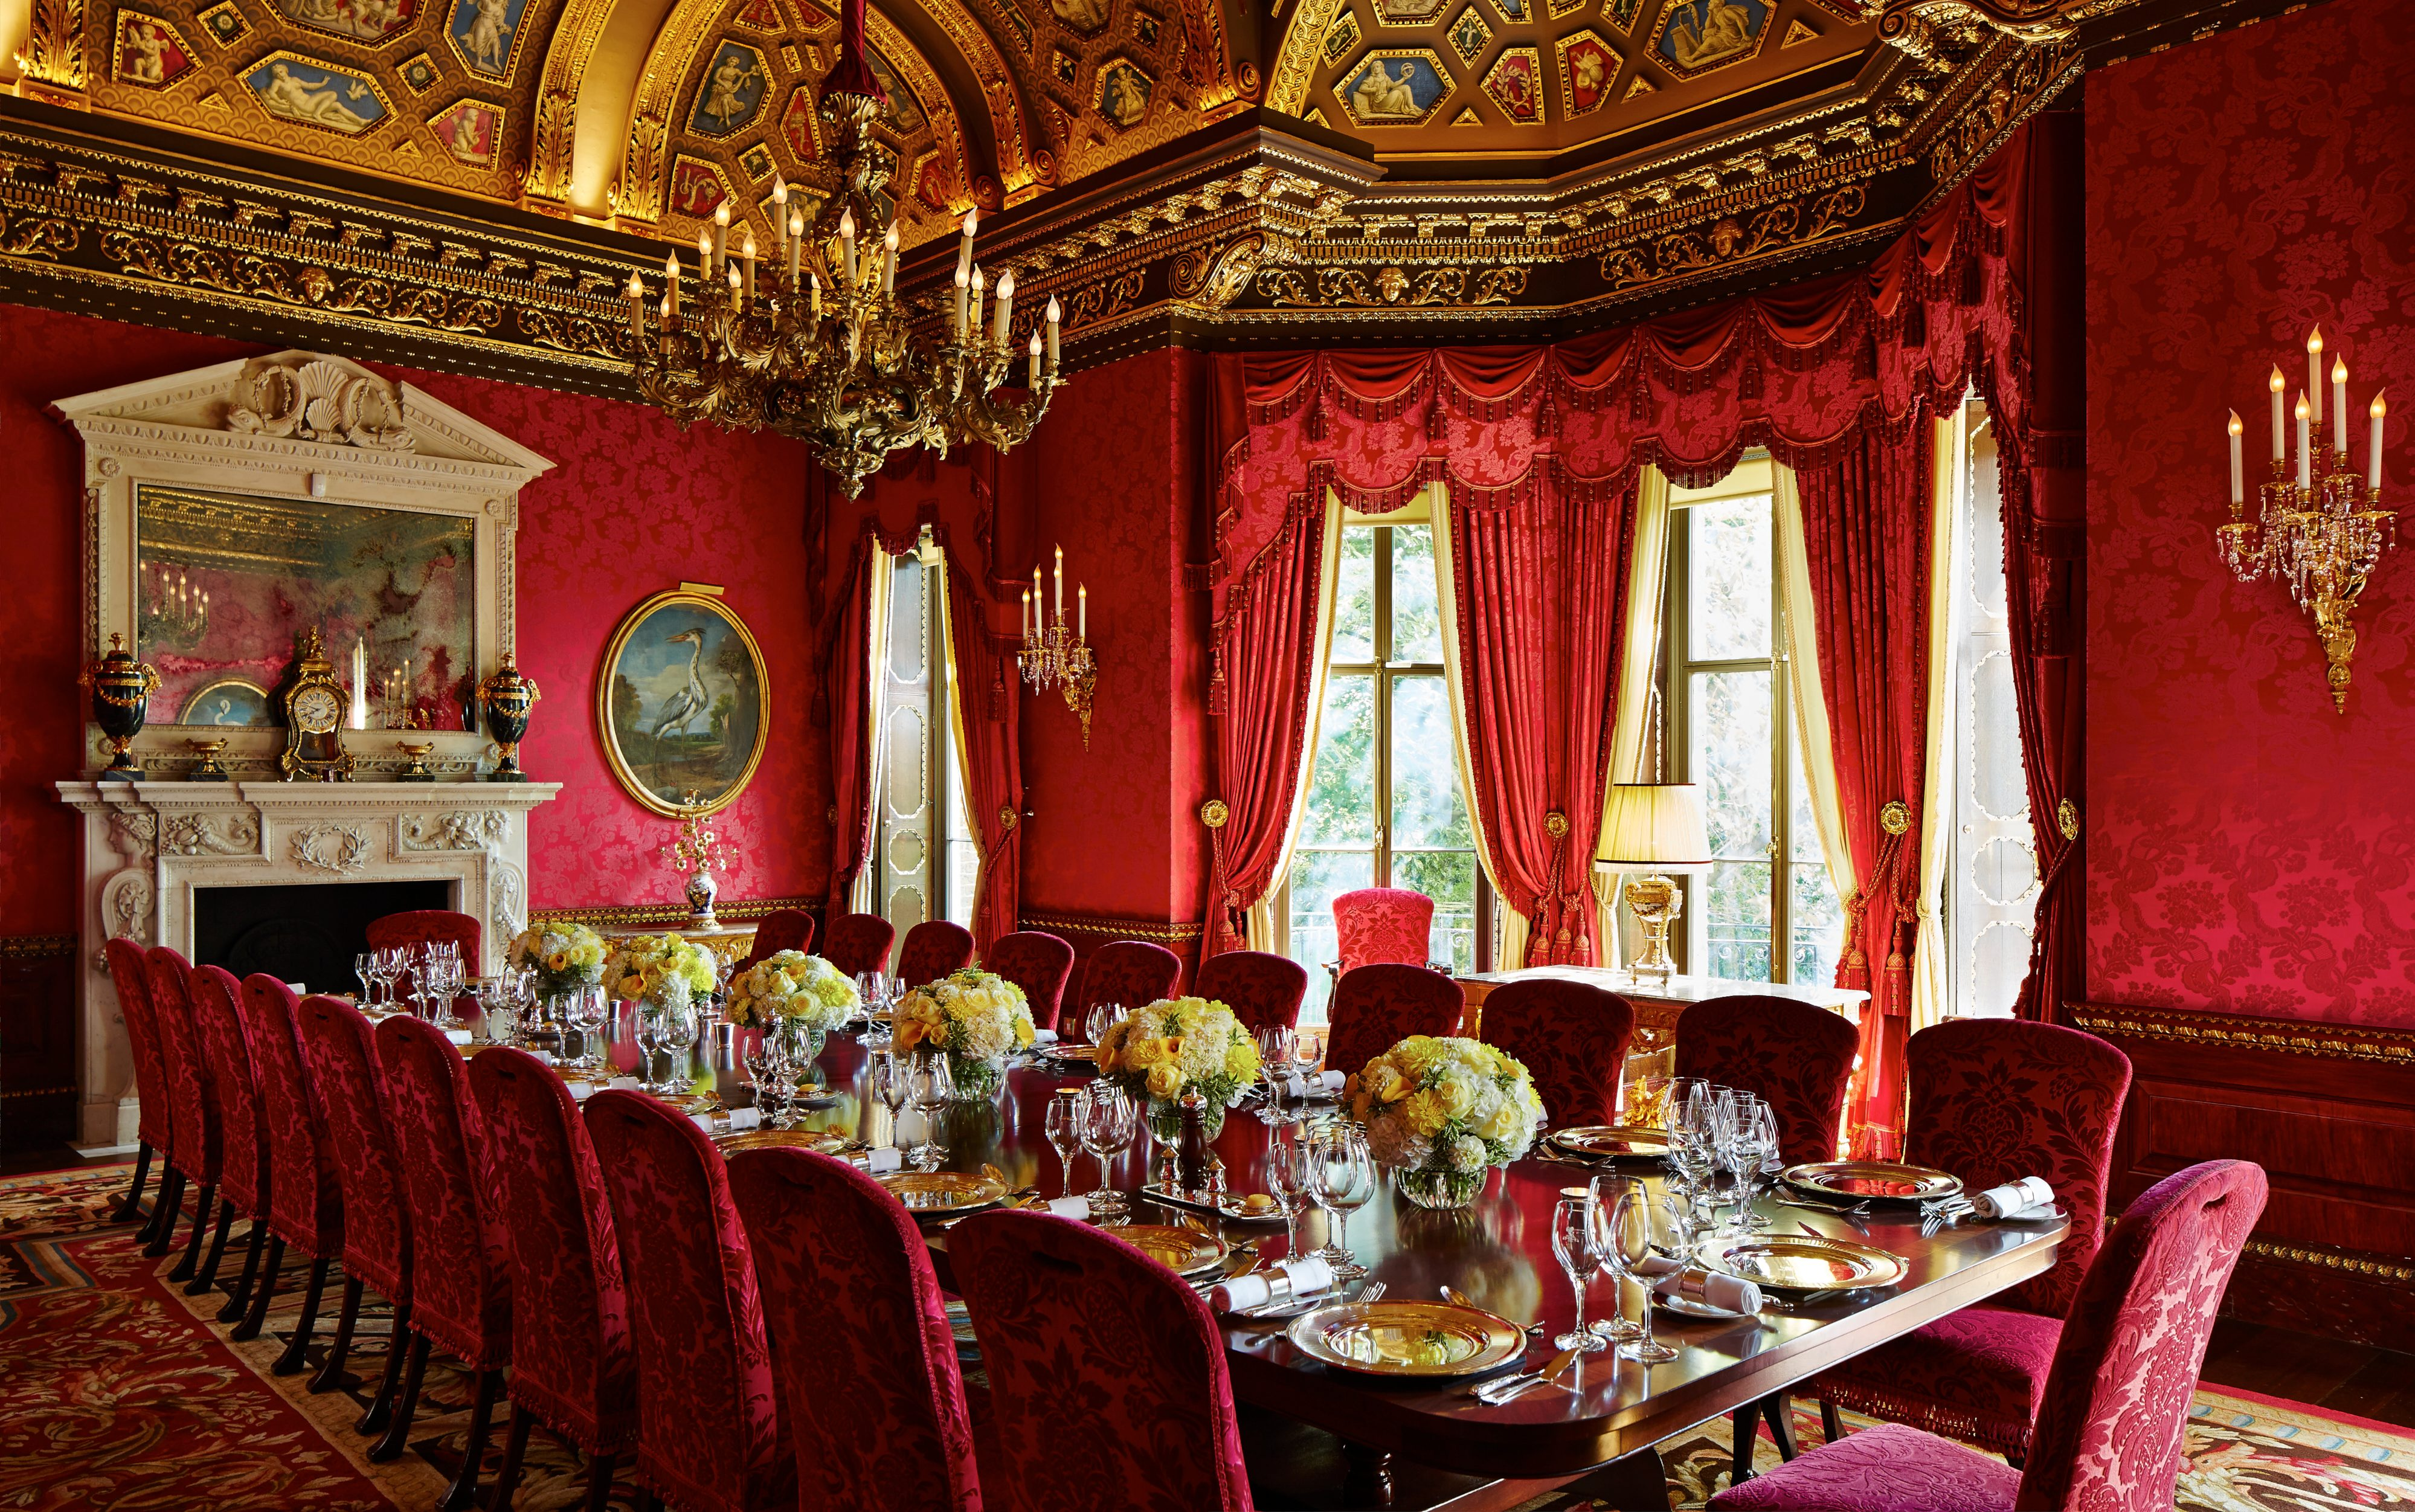 private dining room The World's Most Remarkable Private Dining Rooms 4 The Worlds Most Remarkable Private Dining Rooms